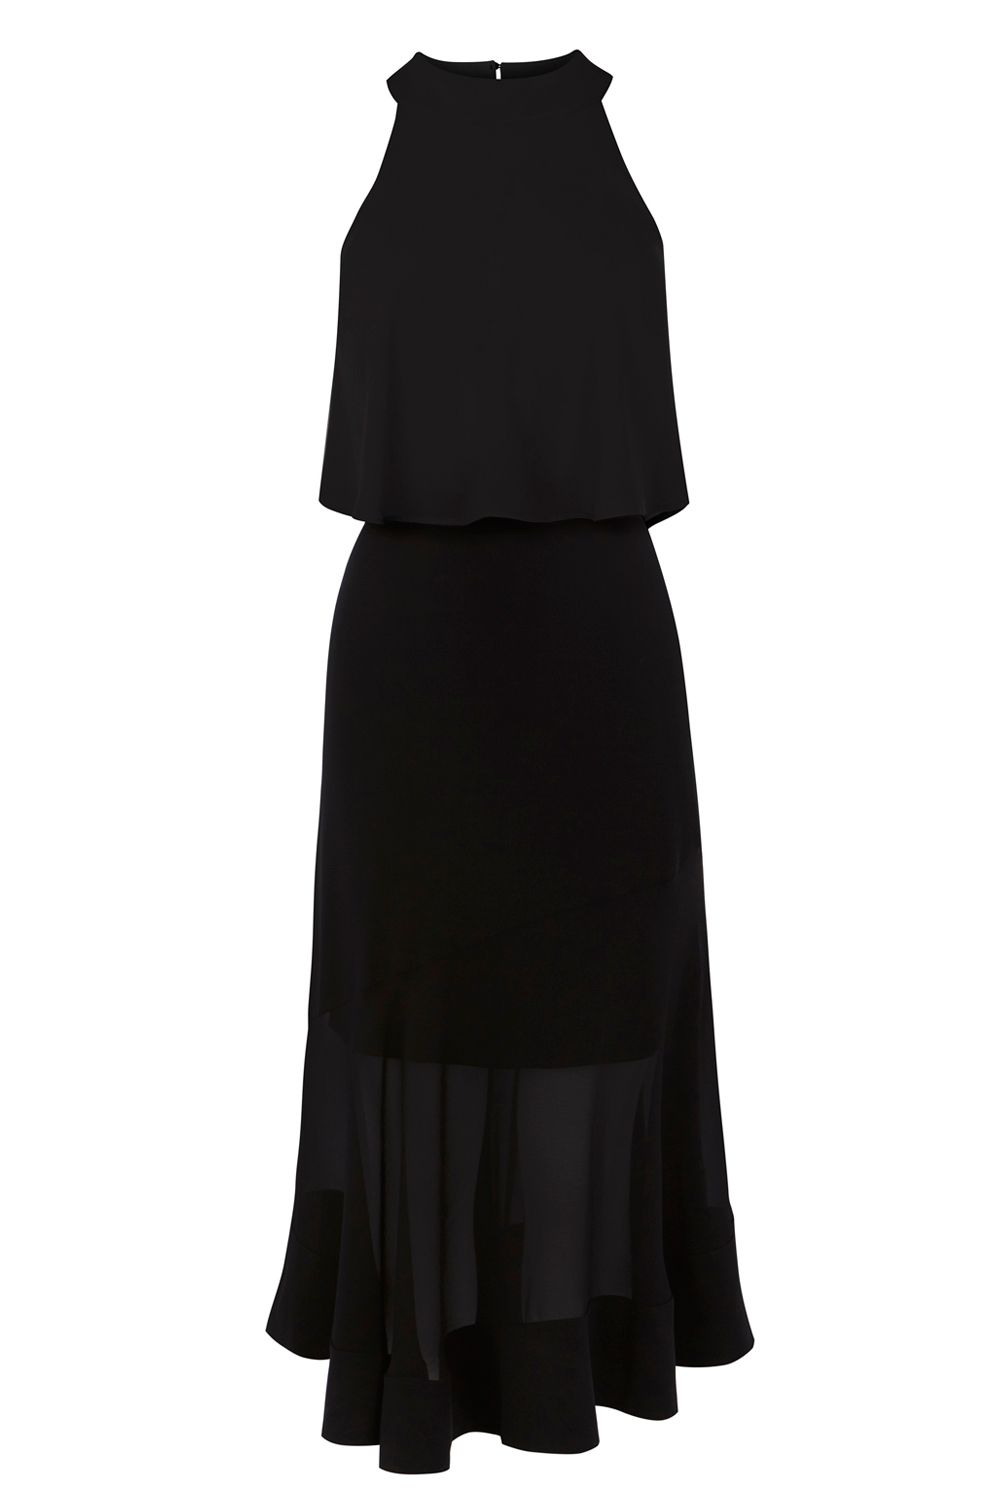 Coast Coast Lola Midi Dress Shorter Length, Black